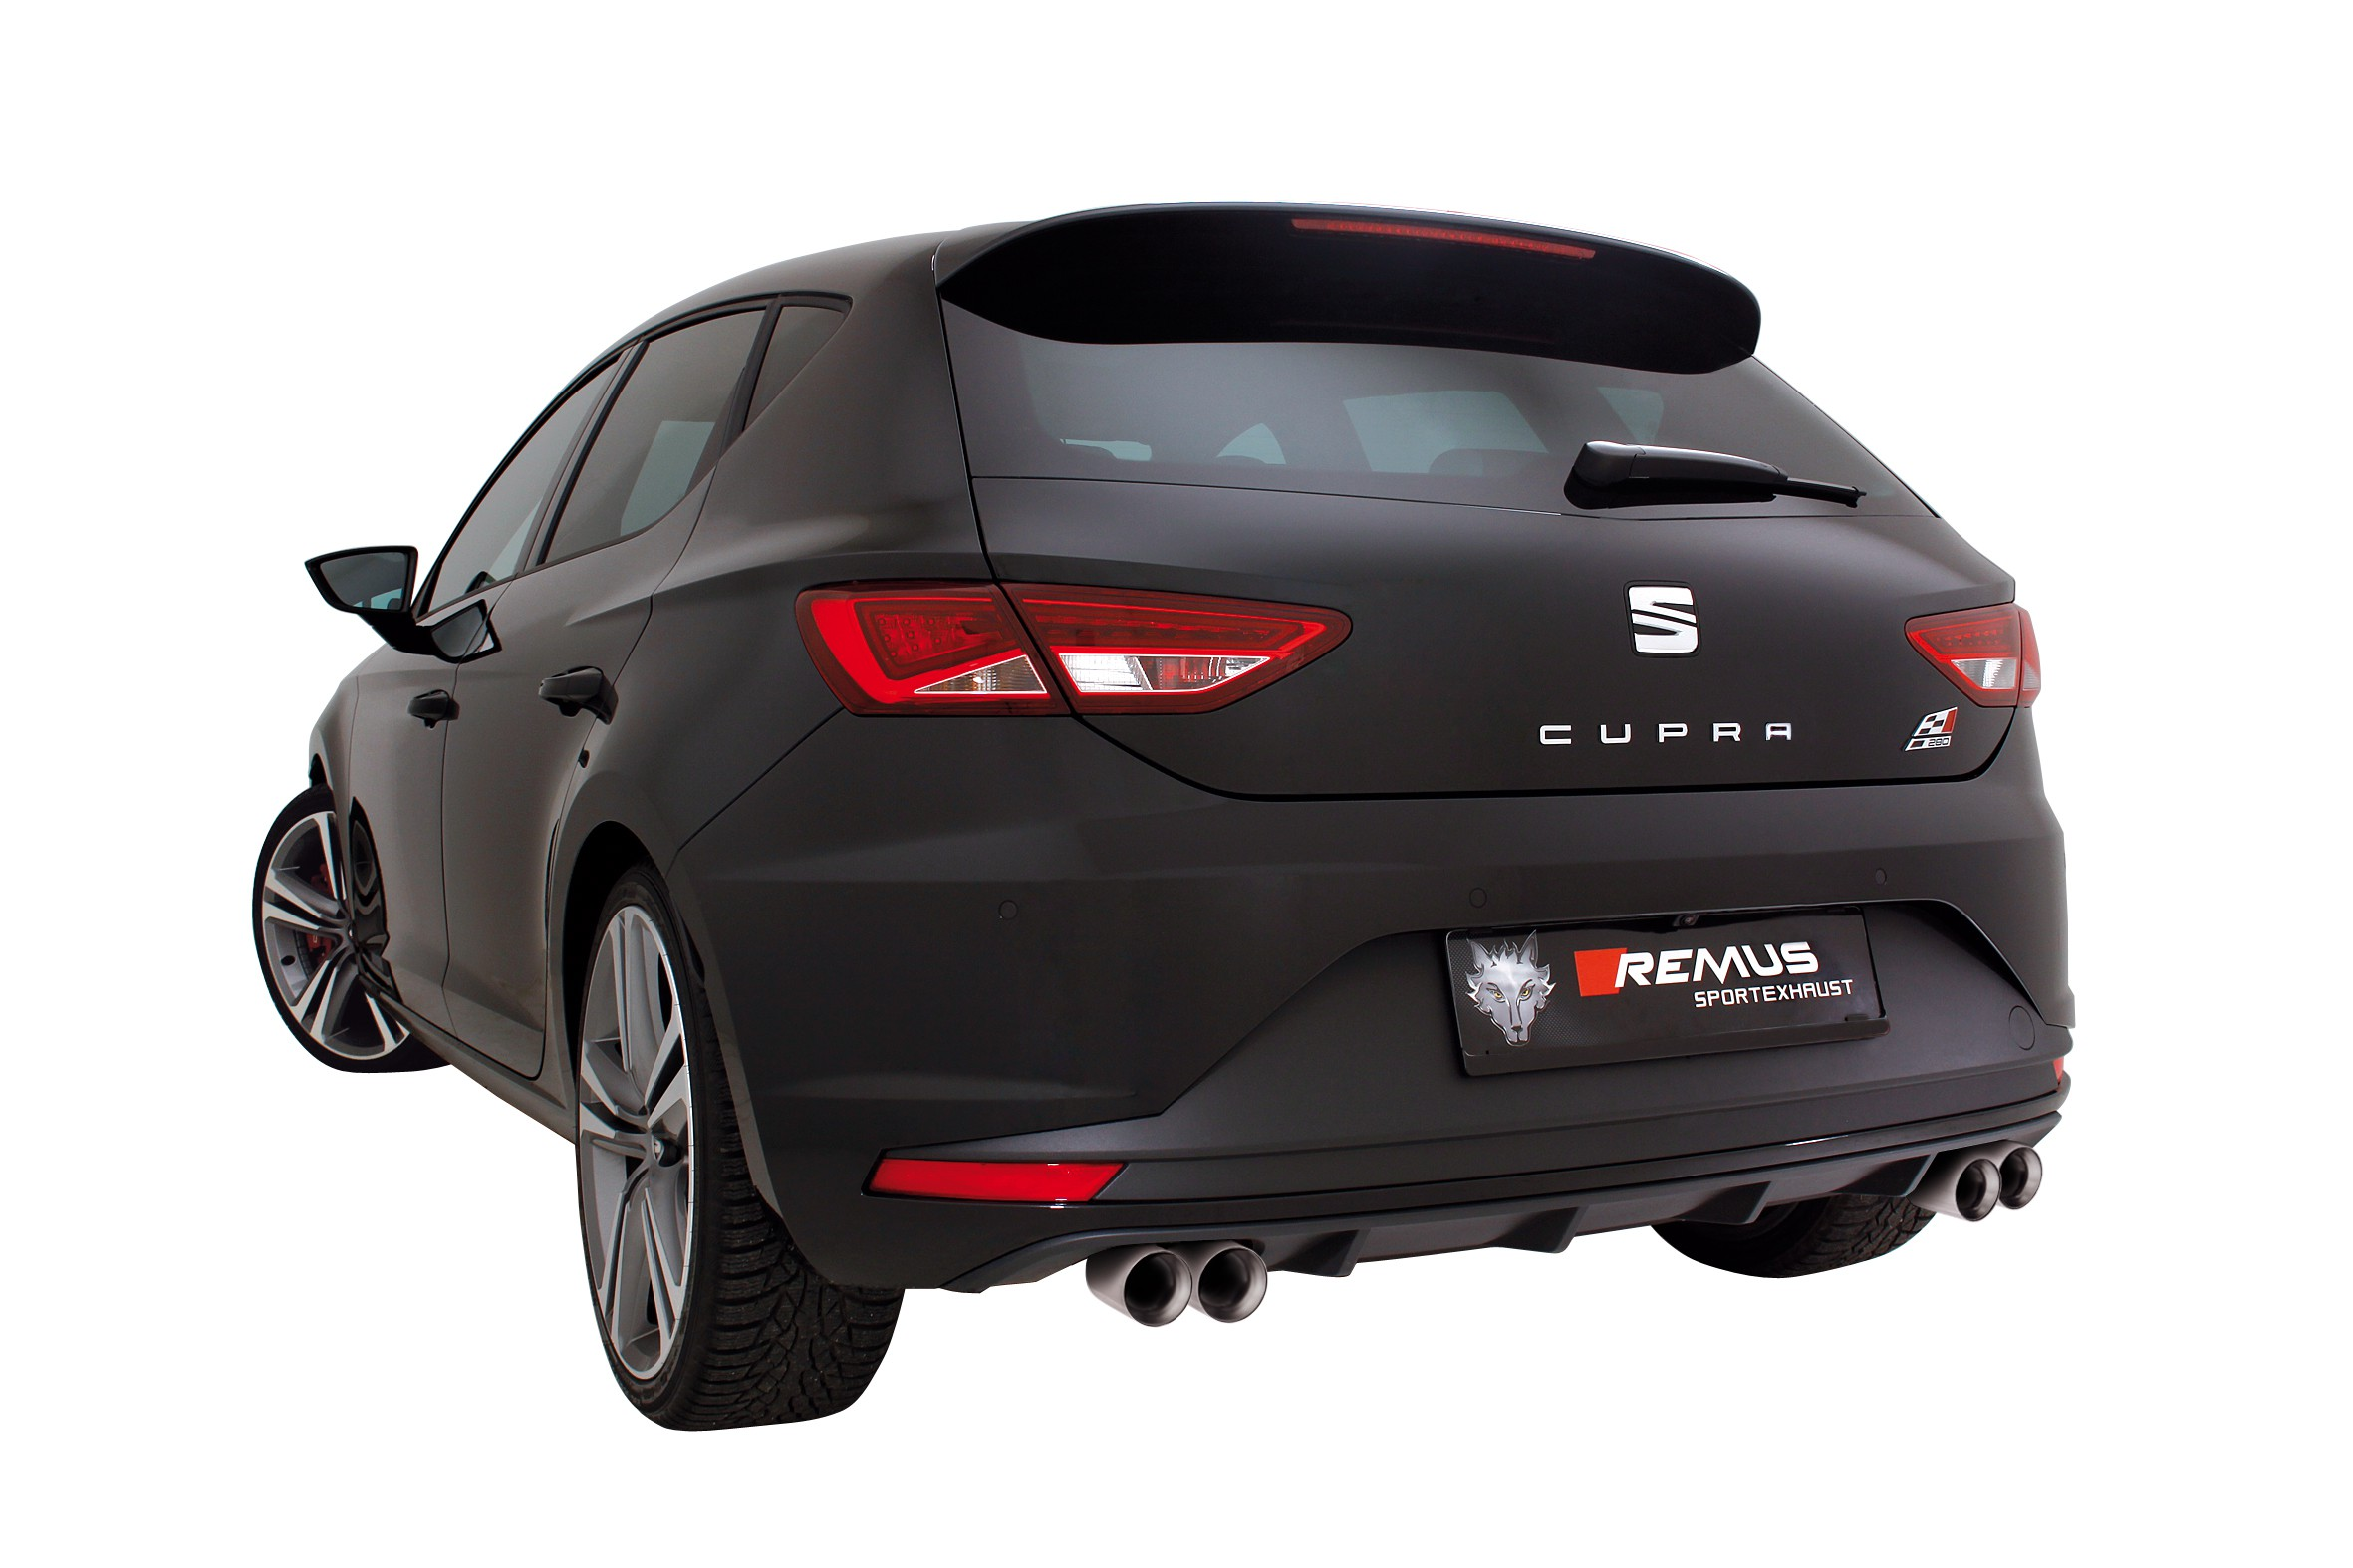 Remus news remus product information 08 2016 seat leon cupra remus product information 08 2016 seat leon cupra cupra sc type 5f 2014 sciox Images